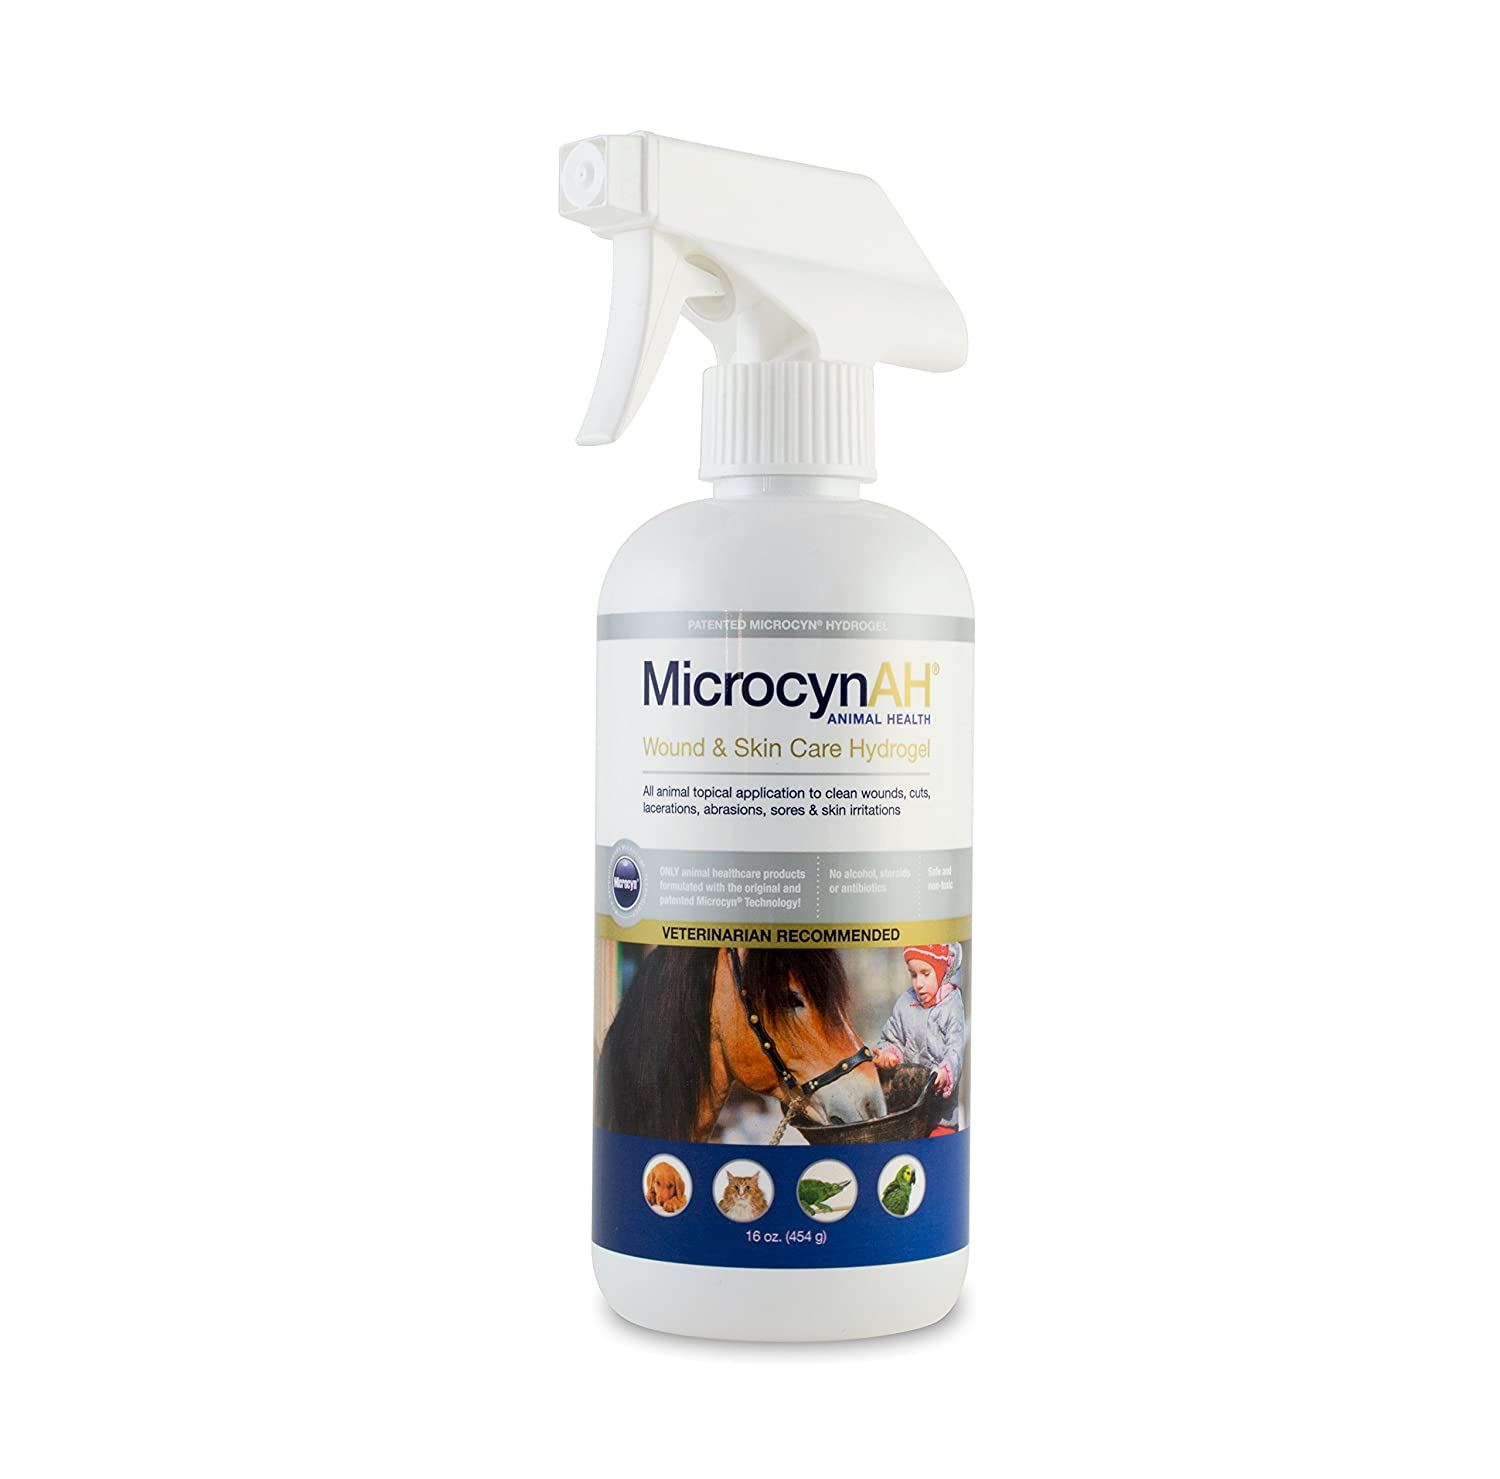 MicrocynAH Wound and Skin Care Sprayable Hydrogel